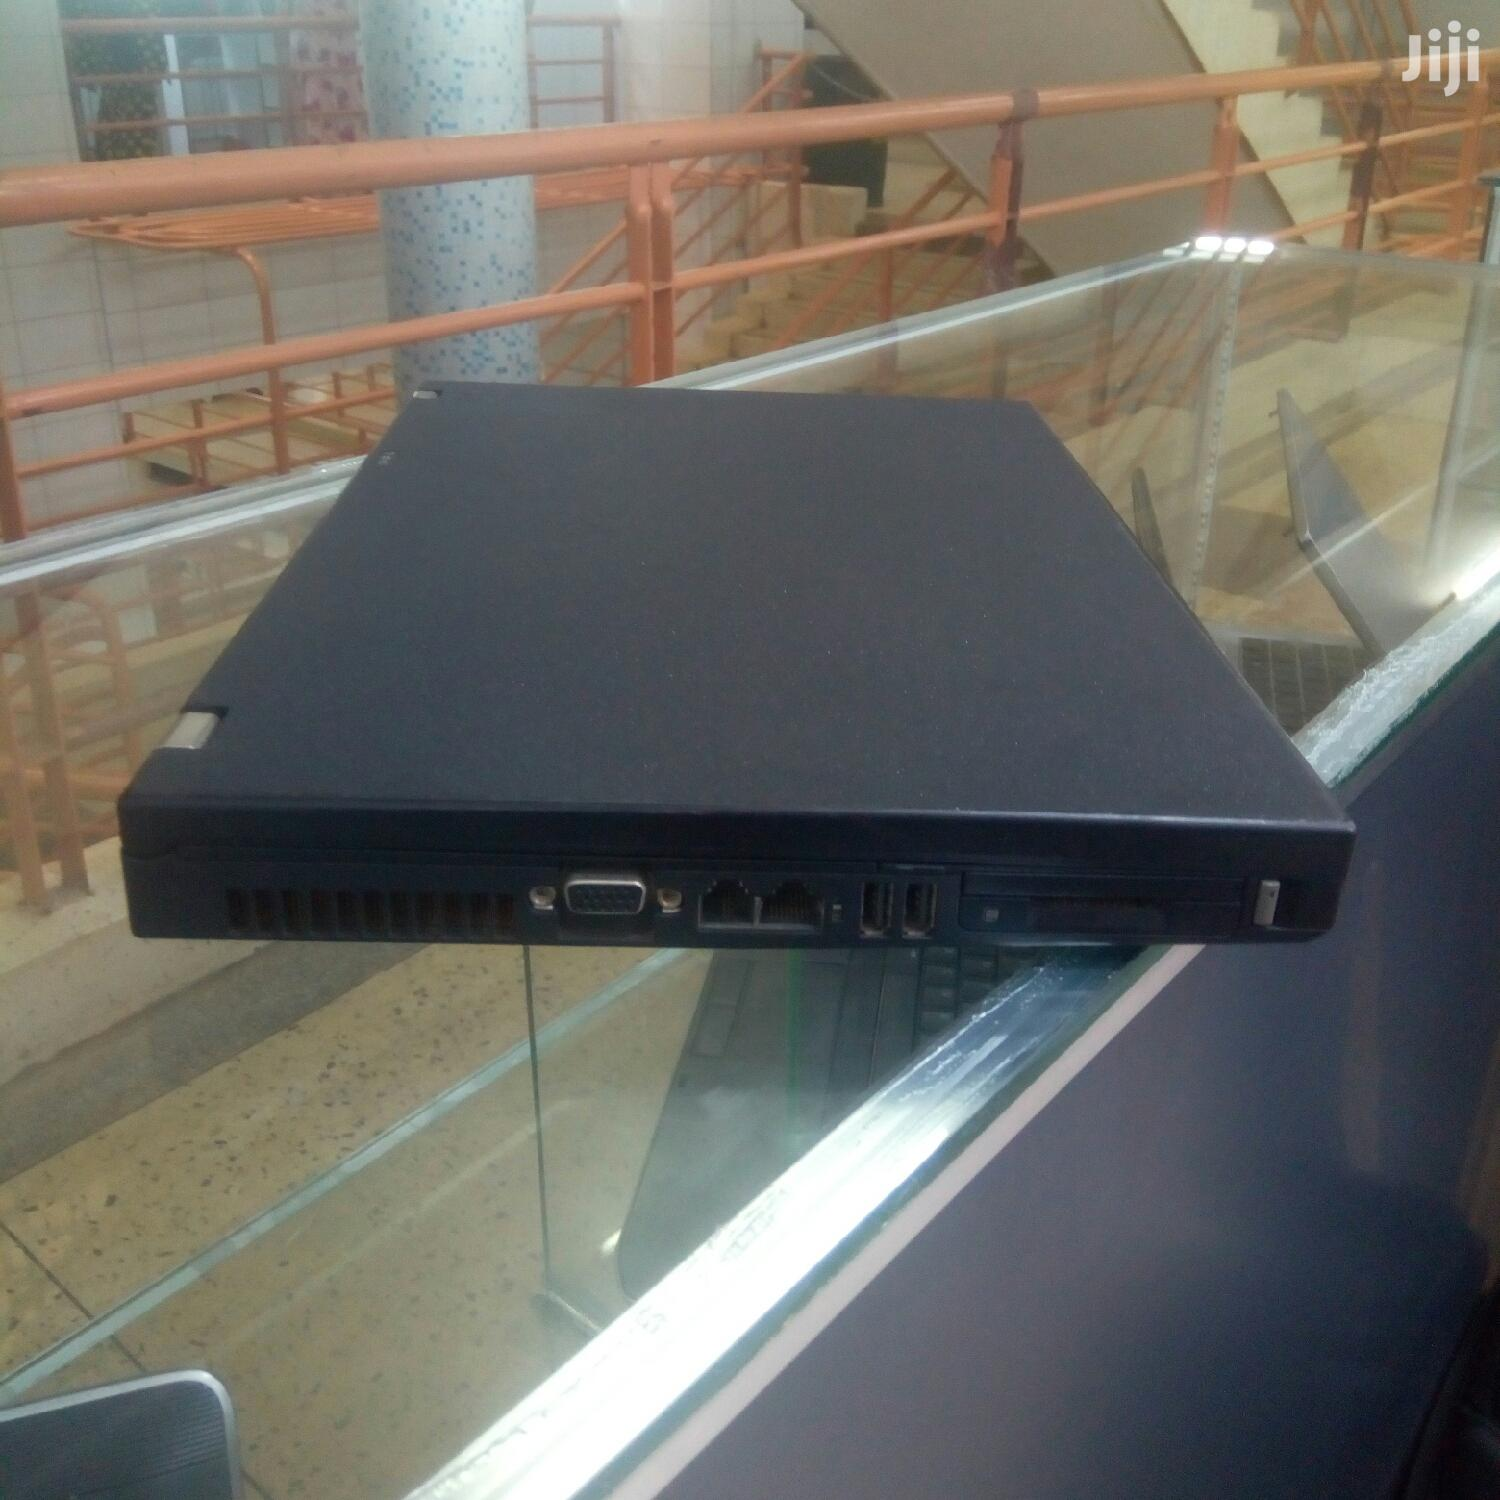 Laptop Lenovo 2GB Intel Core 2 Duo HDD 60GB | Laptops & Computers for sale in Kampala, Central Region, Uganda